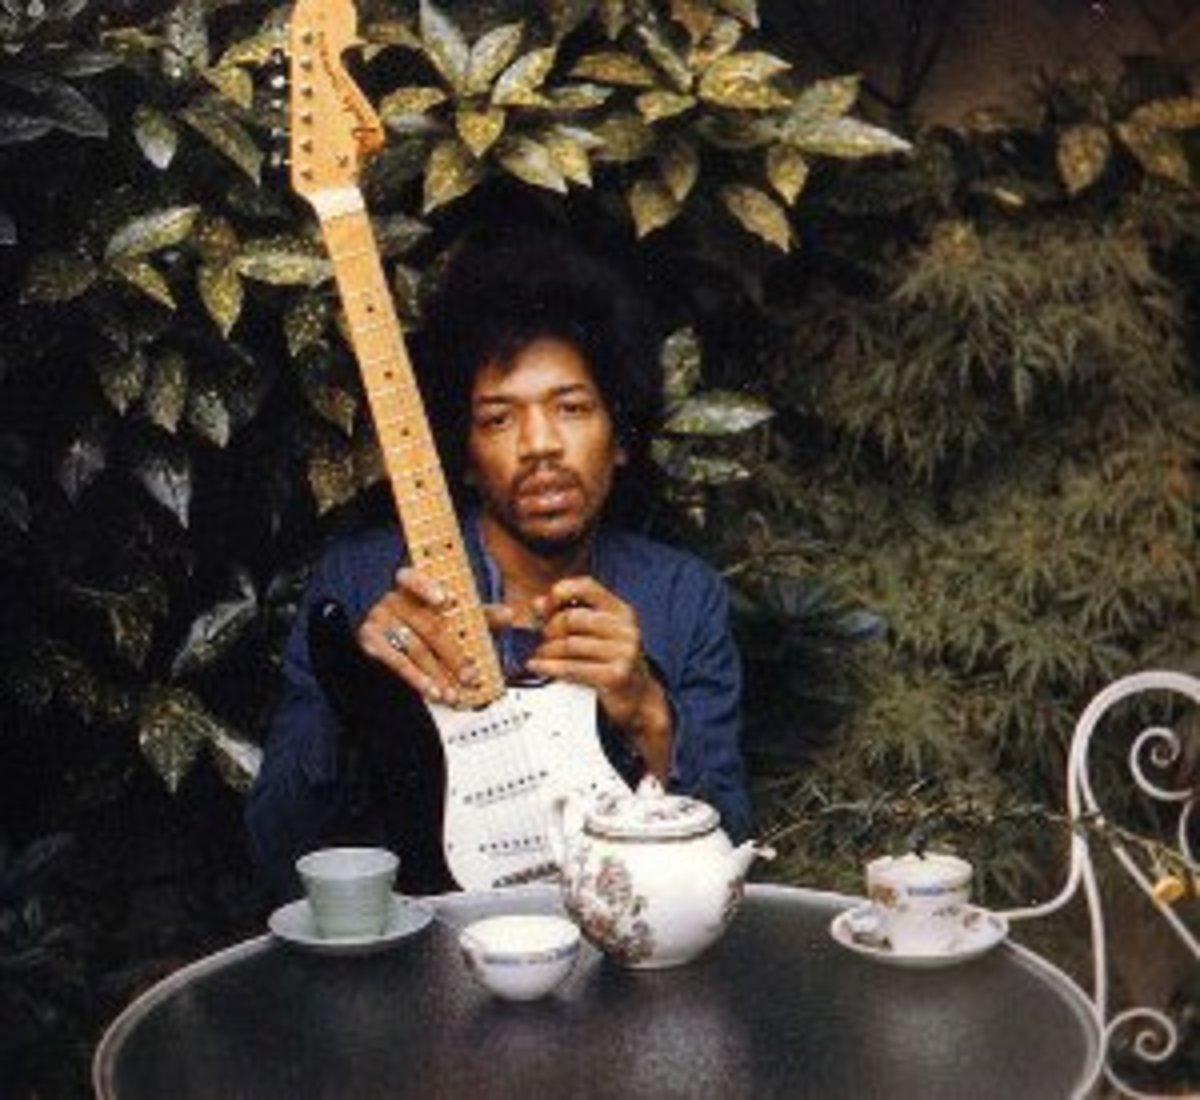 The last photo of Jimi Hendrix